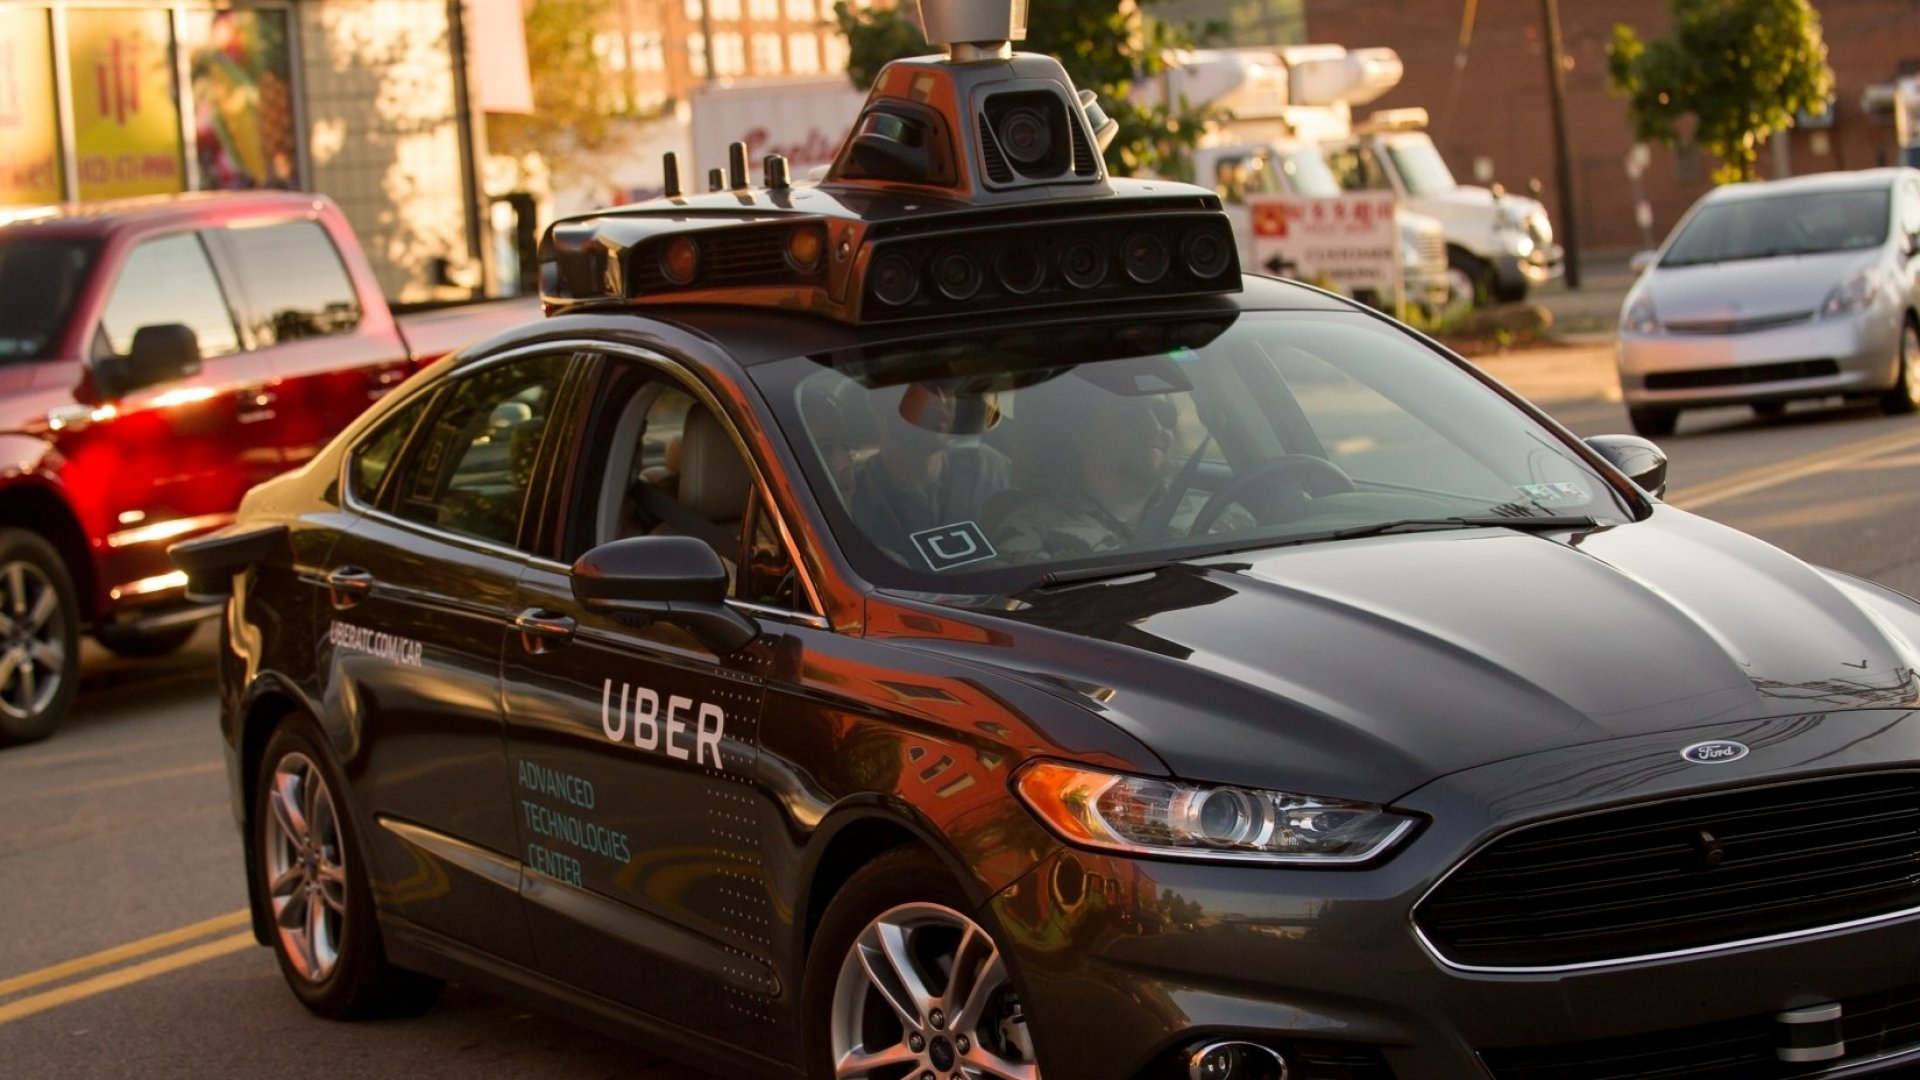 Uber and Lyft Are Betting That Driverless Cars Will Help Them Finally Make Money. Here's Why It Won't Work